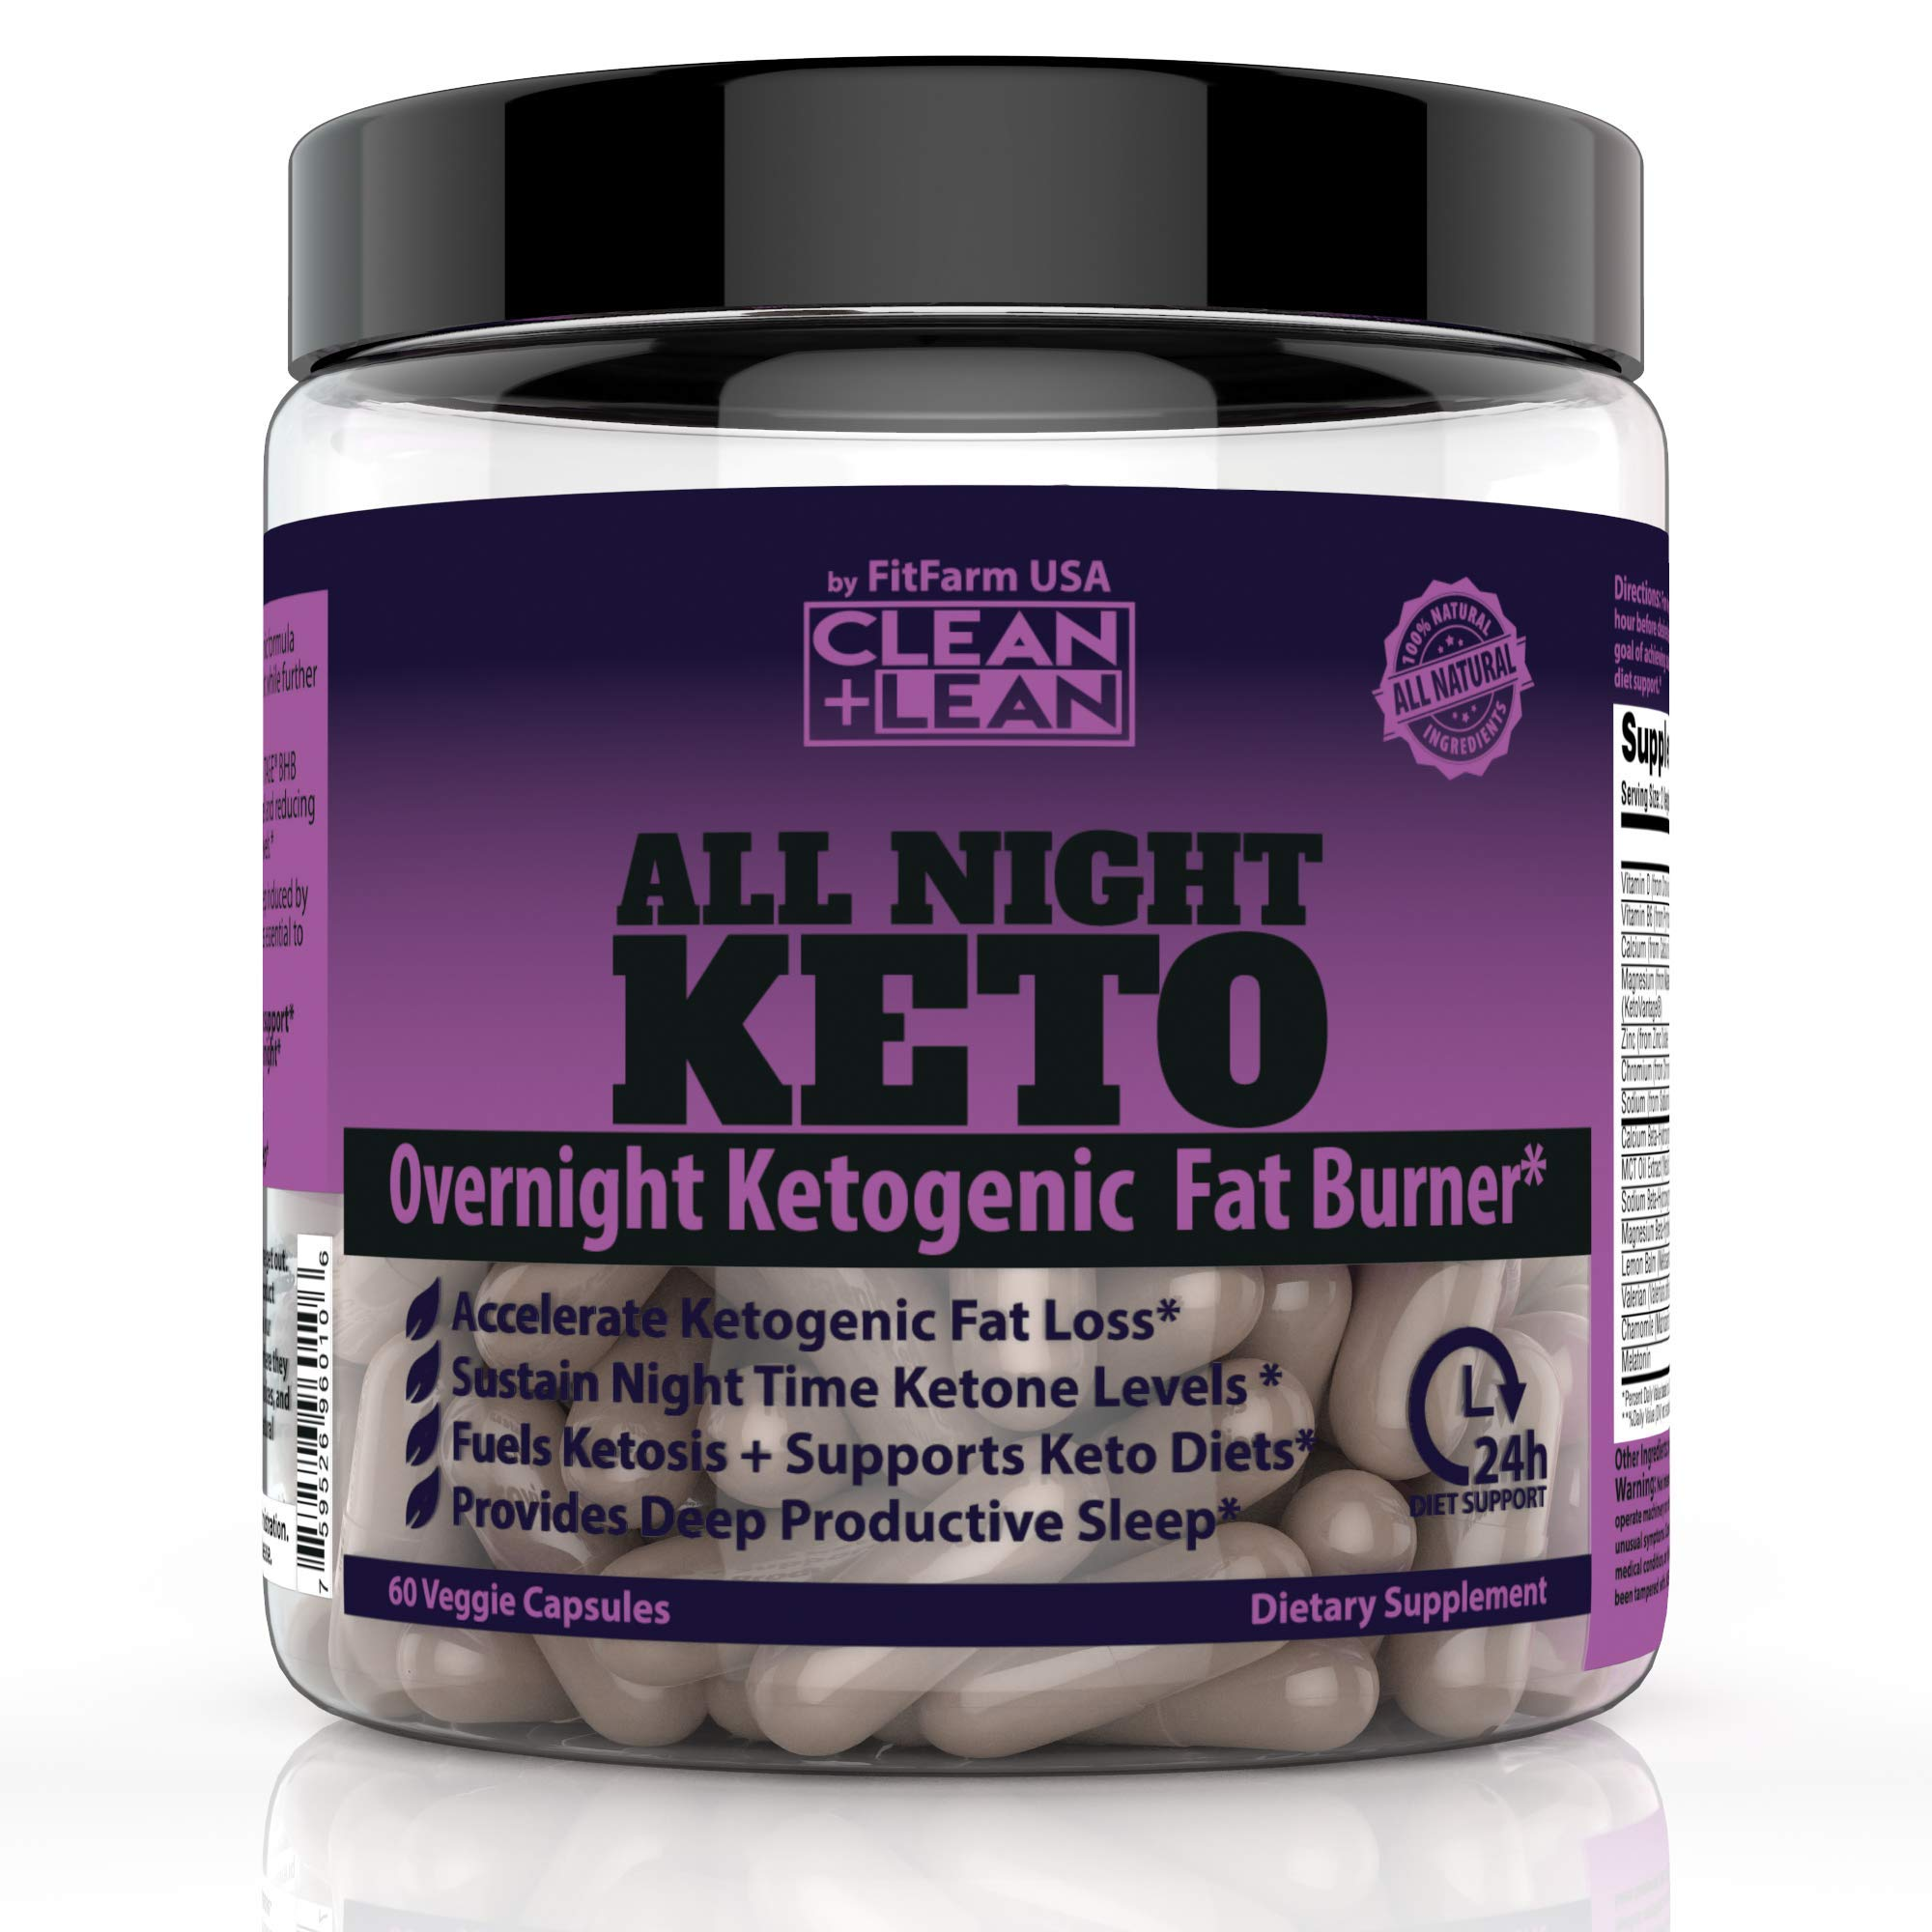 CLEAN+LEAN ALL NIGHT KETO: First Ever Overnight Ketogenic Fat Burner & Sleep Aid | BHB Ketones + MCT Oil Extract + Vitamins & Minerals | 24 HR Diet Sleep Great Lose Weight | All Natural & GF | 60 Caps by FIT FARM USA